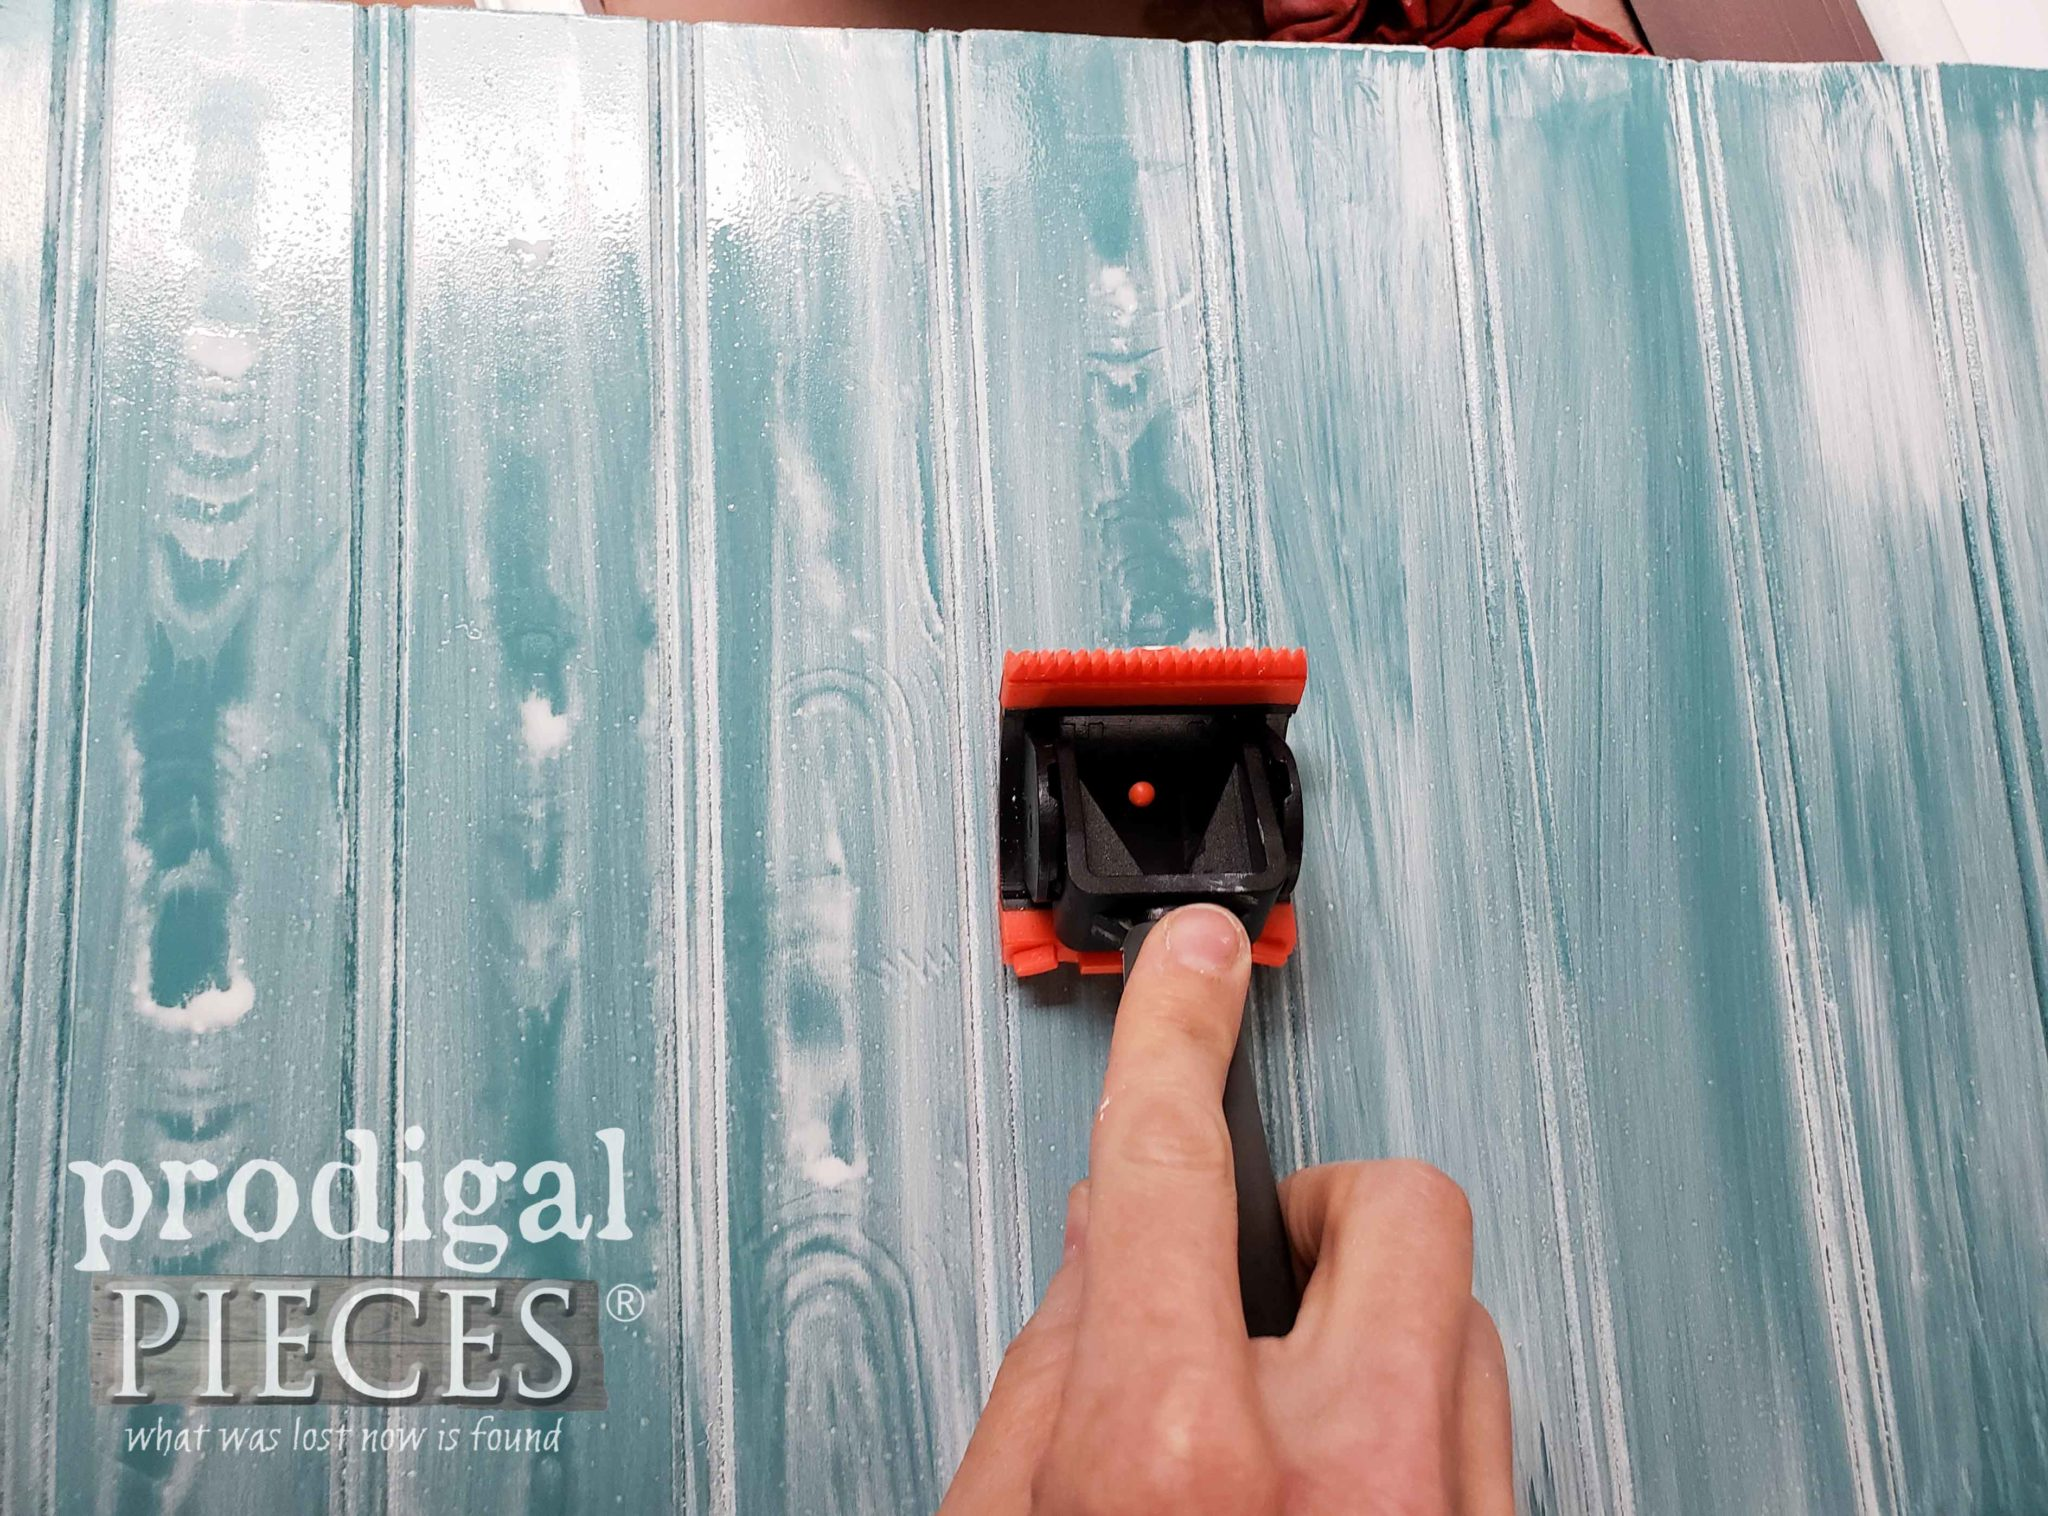 Creating a Faux Wood Grain Effect with a Wood Graining Tool by Larissa of Prodigal Pieces | prodigalpieces.com